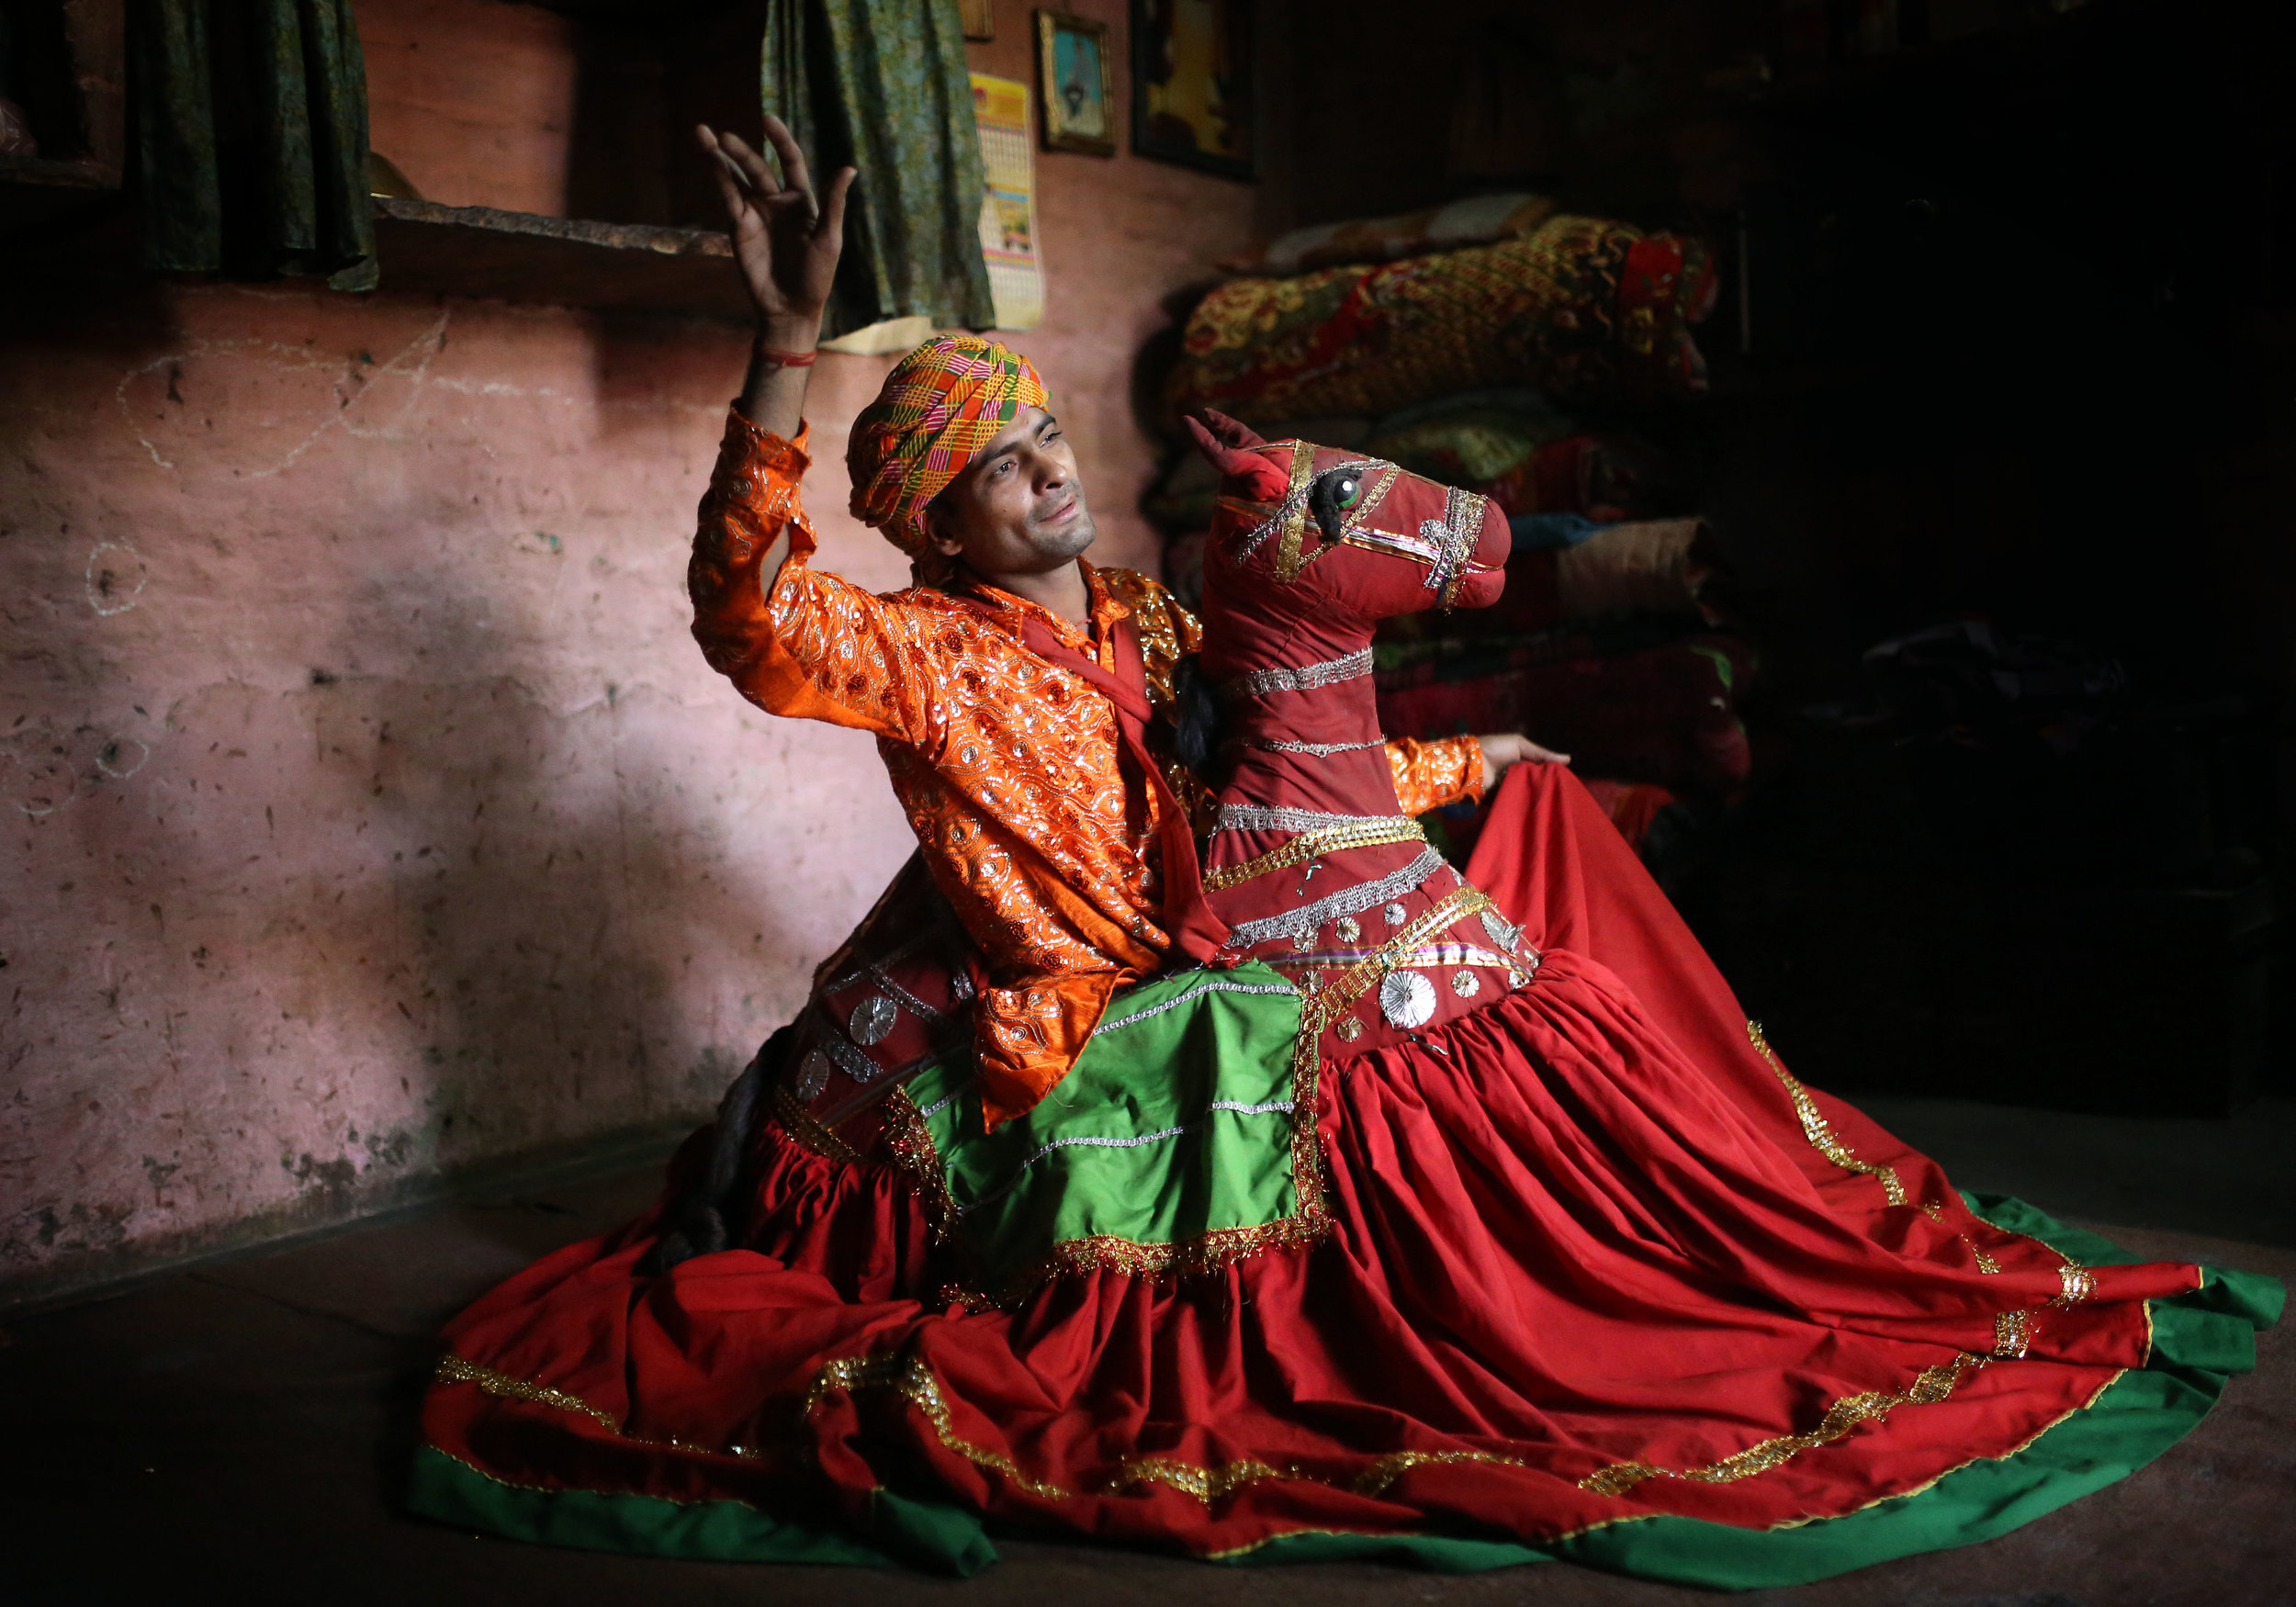 Jagdeesh Makkhan is pictured performing the Kachhi Ghodi traditional Rajasthani folk dance at his home in the Kathputli slum colony of New Delhi, India, December 7th, 2014. He is one of 40,000 people living in the slum, which is popularly known for being the worlds largest colony of street performers,a including magicians, snake charmers, acrobats, singers, dancers, actors, traditional healers and musicians and puppeteers. Their livelihood is under threat however as the Delhi government has obtained contracts to demolish the colony to make way for developers to build high-rise apartments.